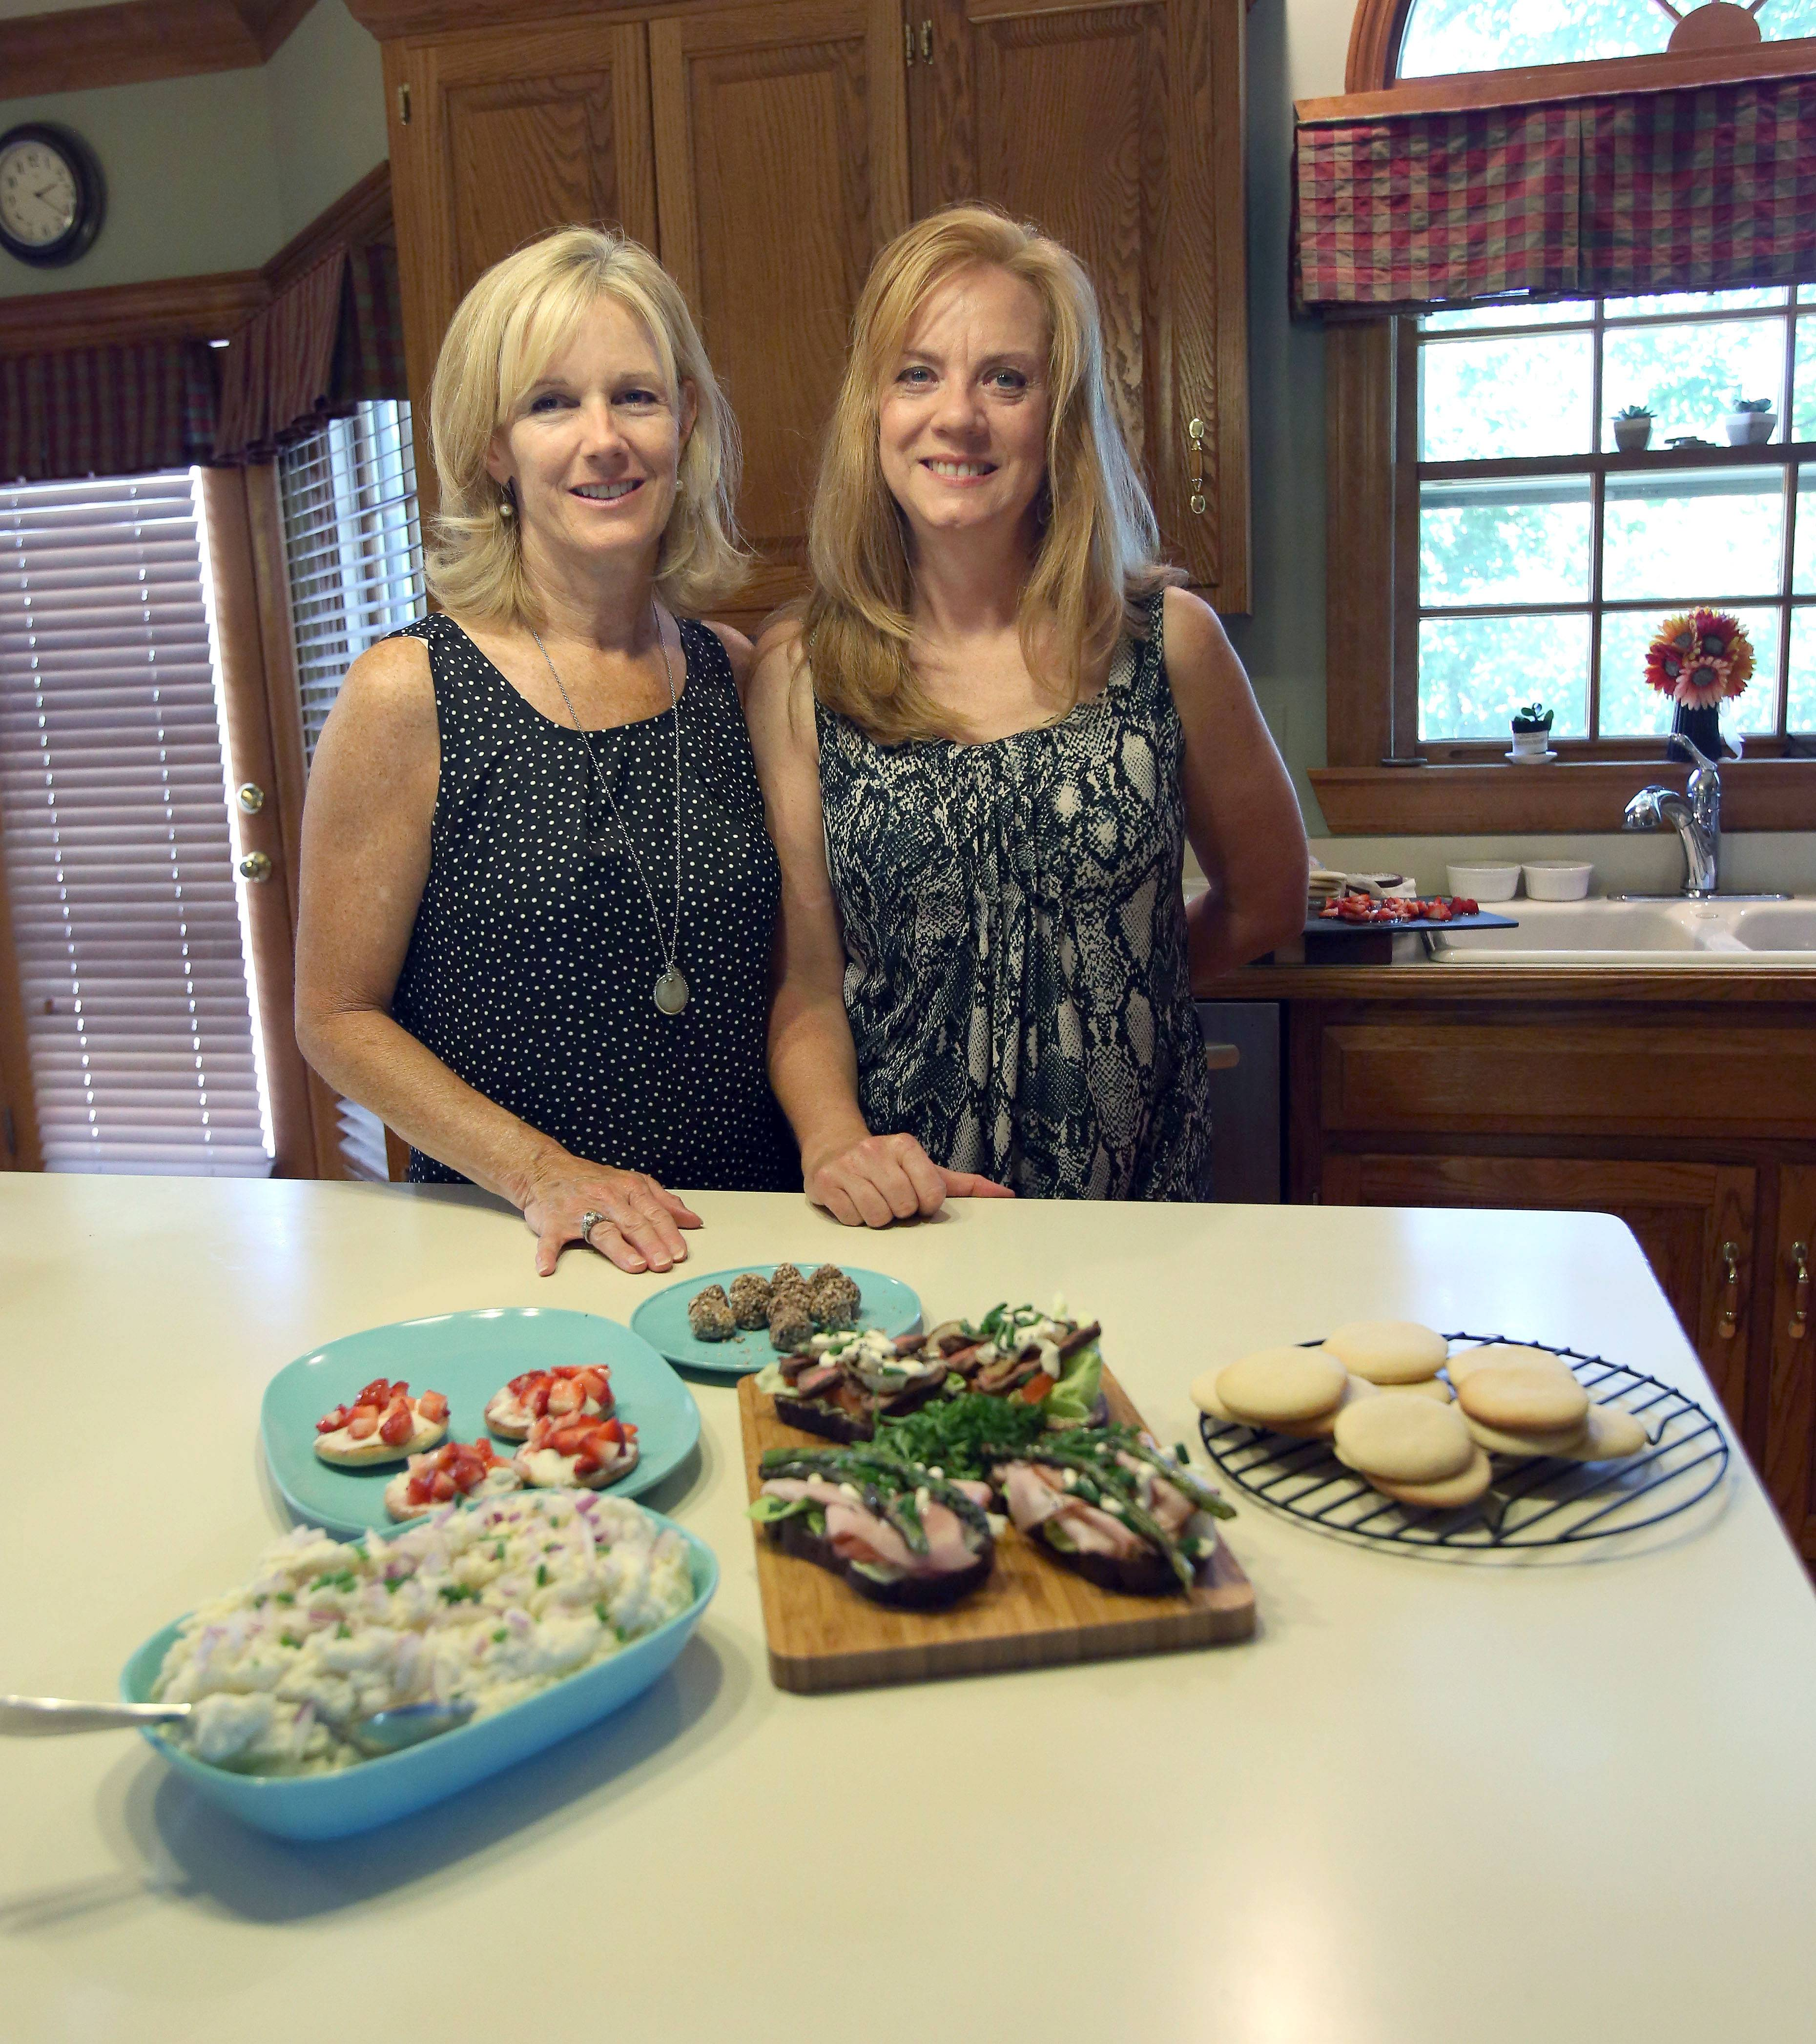 Beth Fawcett of Wheaton, left, and Annette Barum-Sindberg of Chicago, show off their Danish smushi open-faced sandwiches, Strawberry Medallion Cookies and Eva's Mashed Potato Salad that will be part of their cookbook.